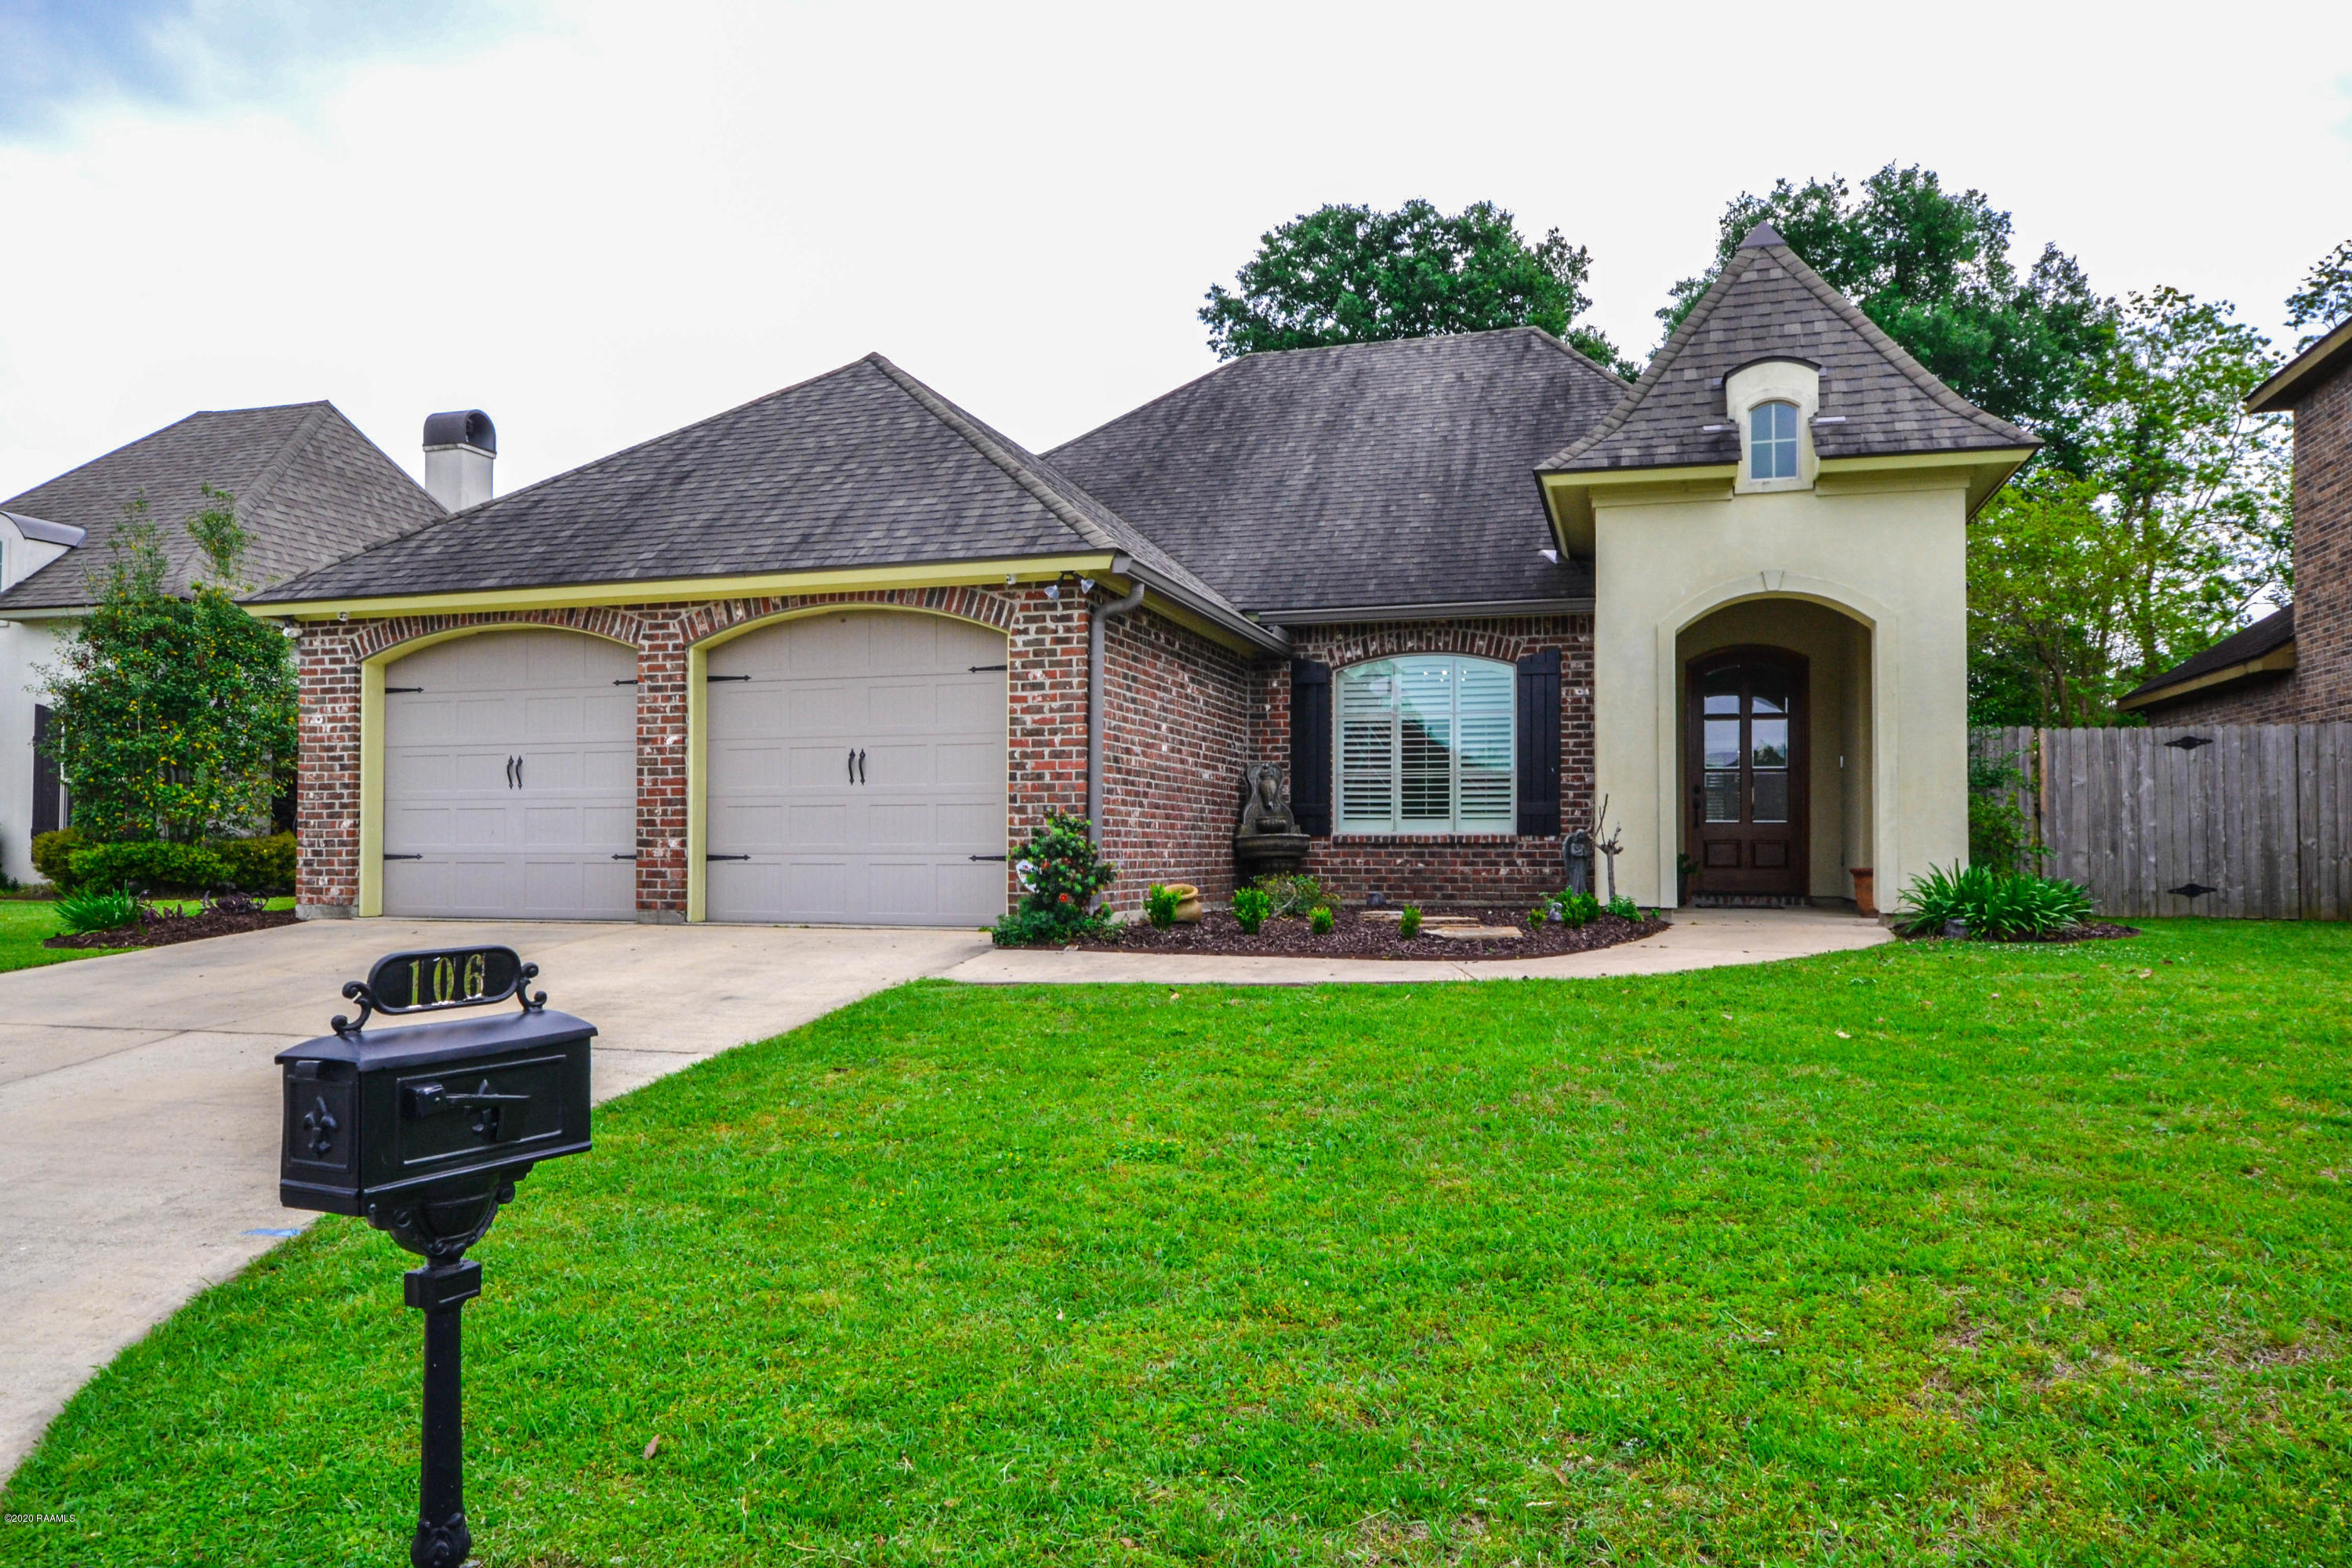 106 La Villa Circle, Youngsville, LA 70592